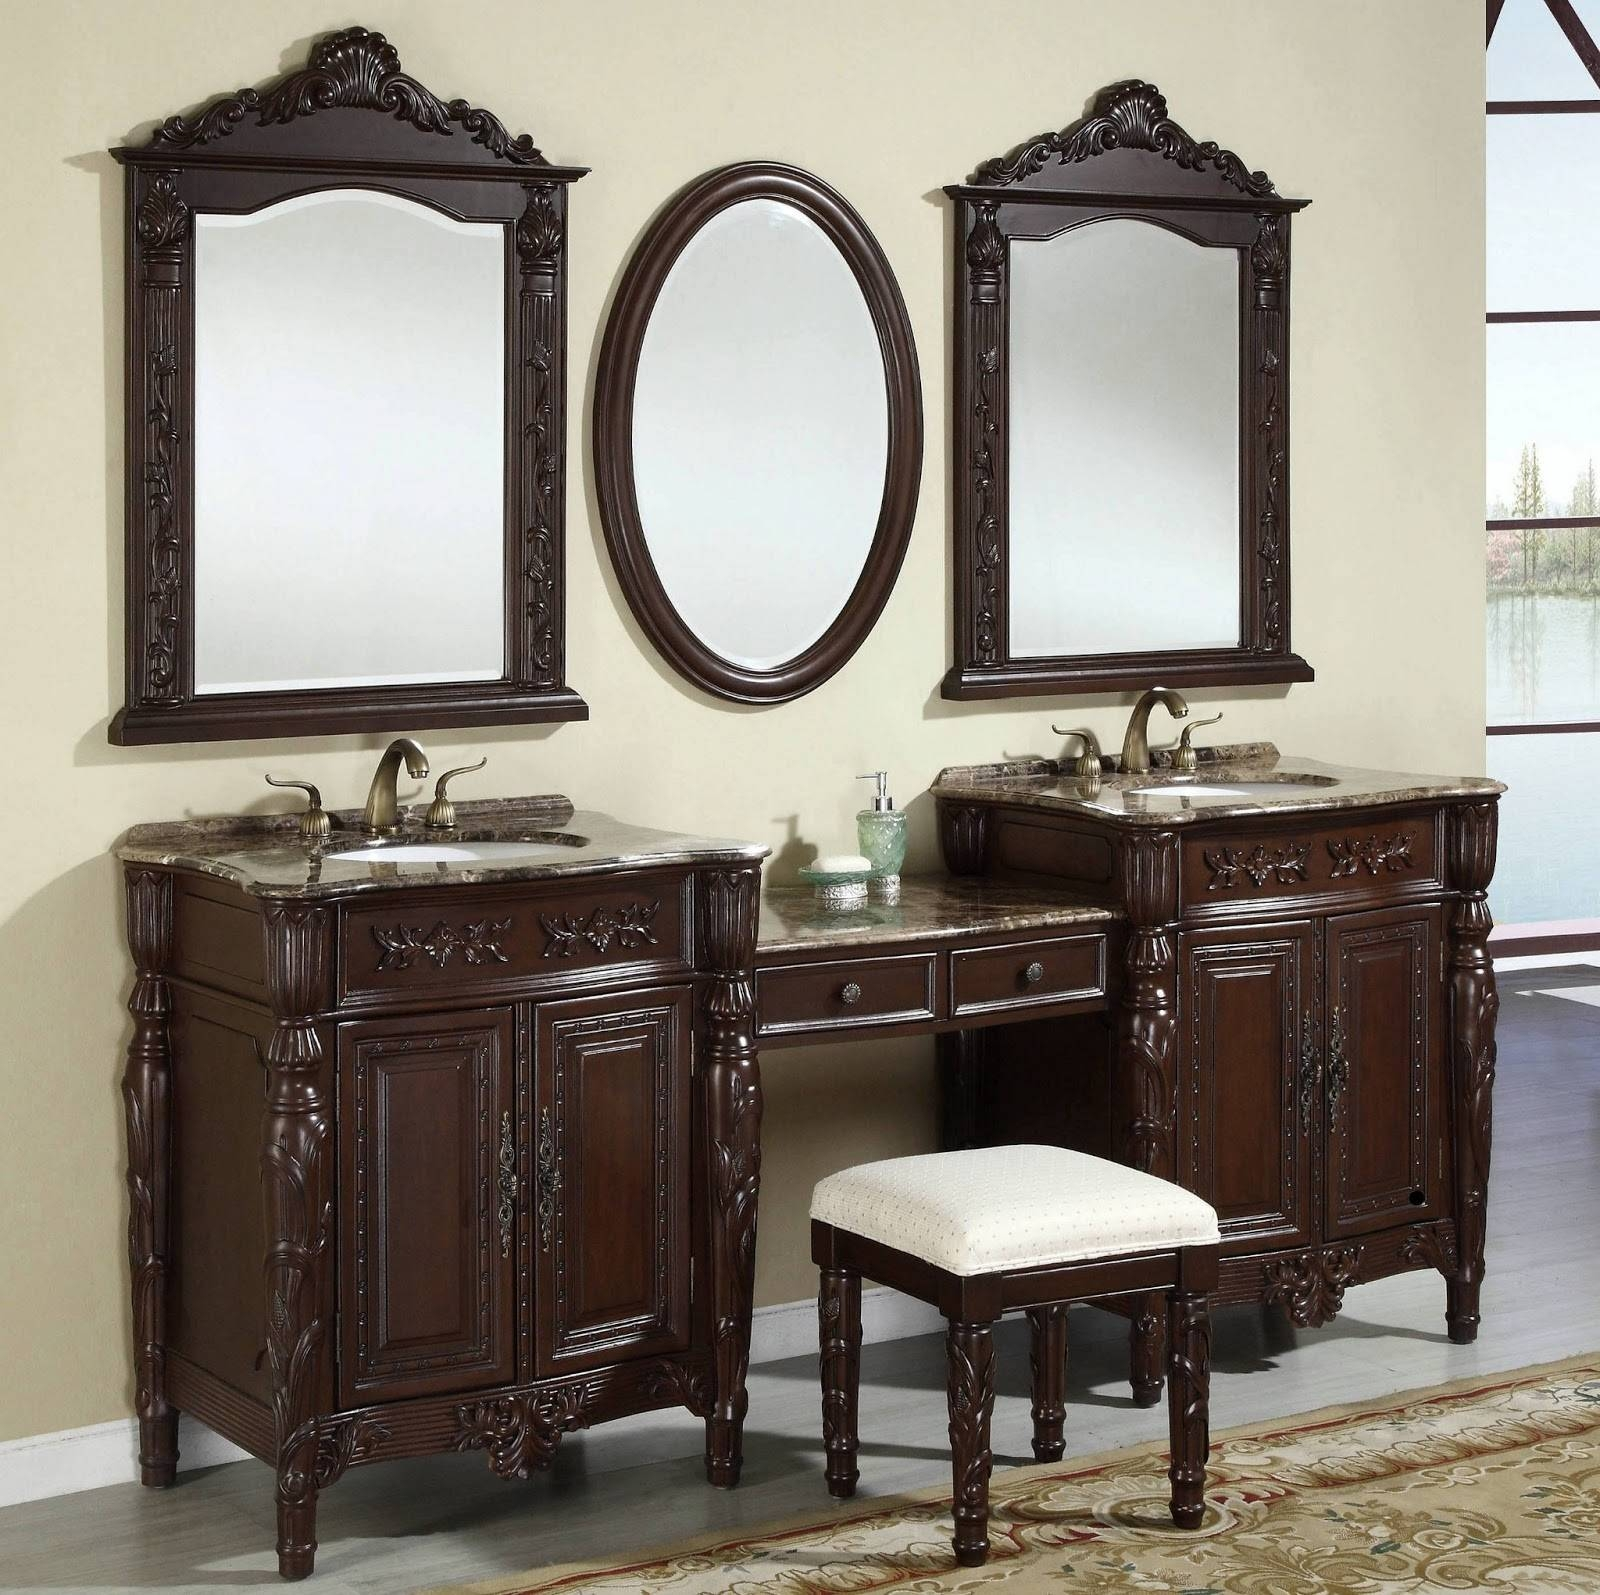 Bathroom Vanity Mirrors Design Ideas - Somats with regard to Antique Mirrors For Bathrooms (Image 7 of 15)